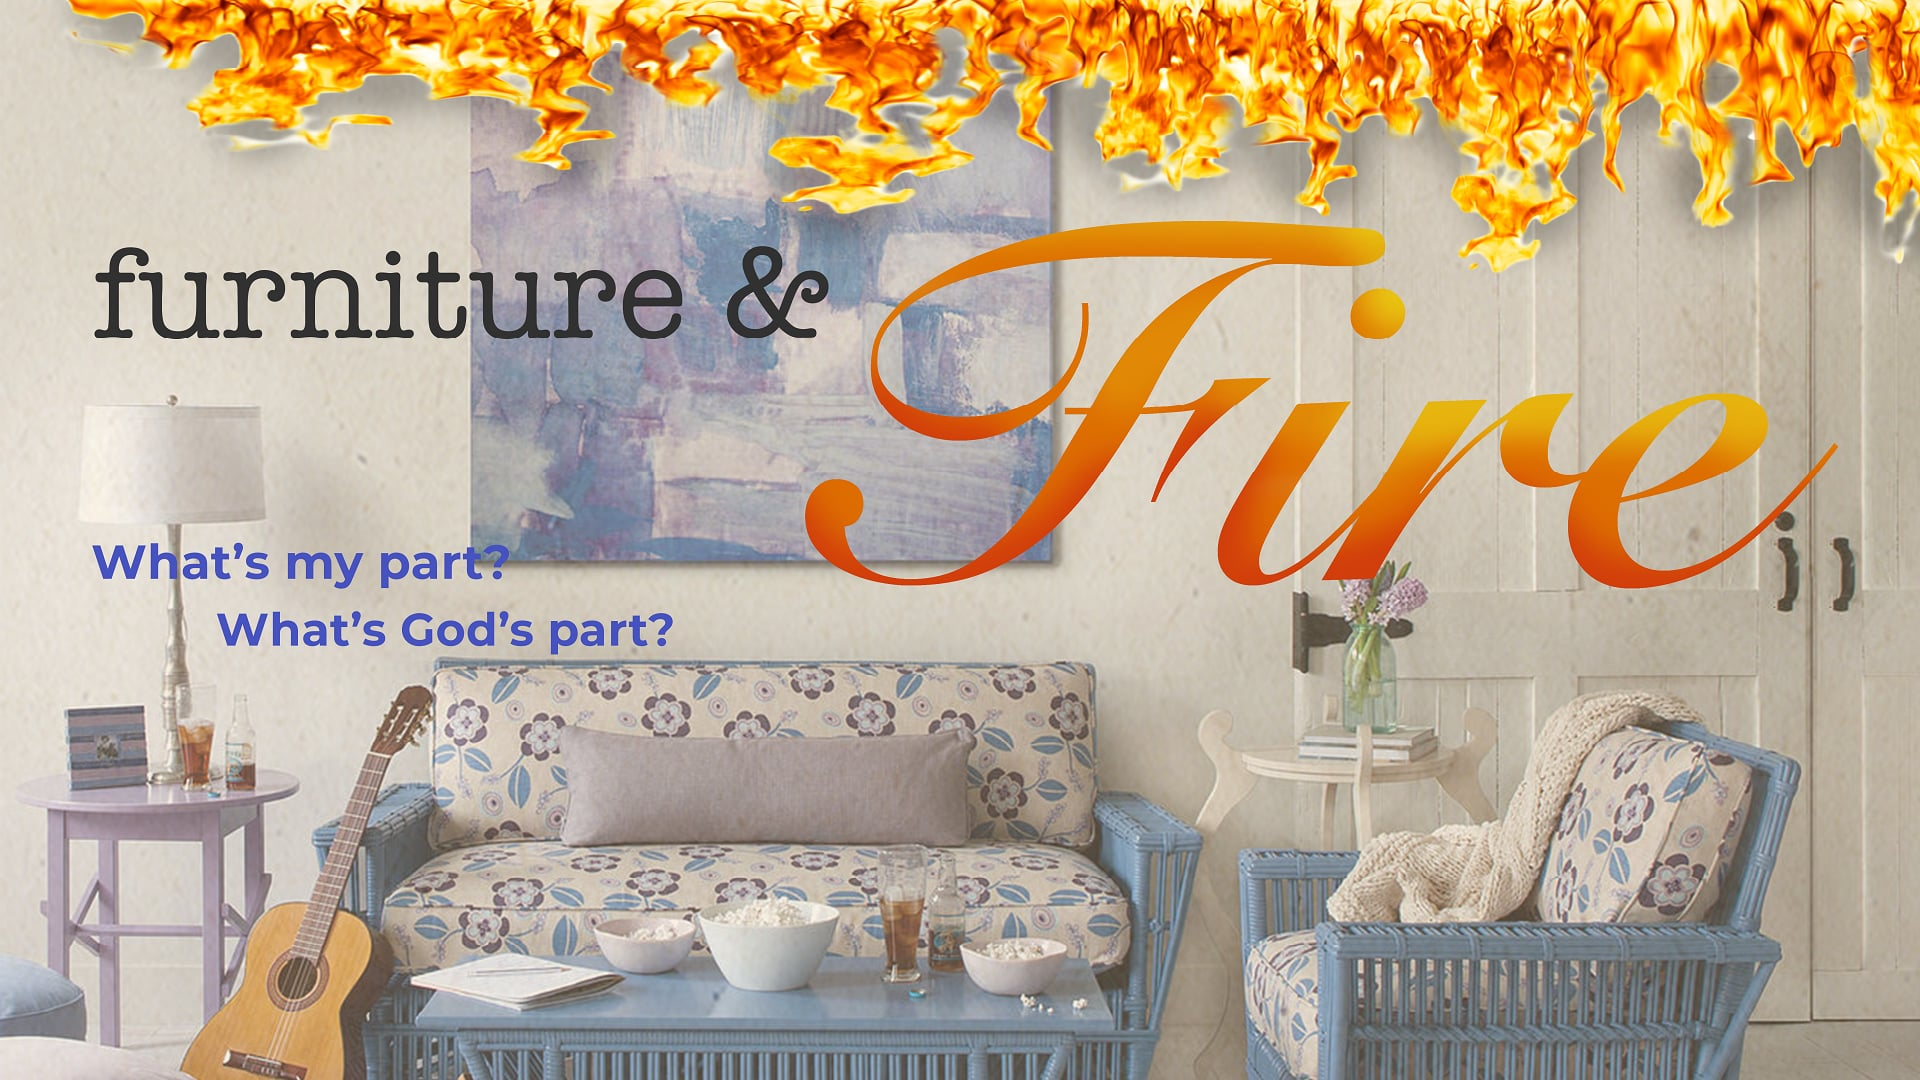 Furniture and Fire - Part 6